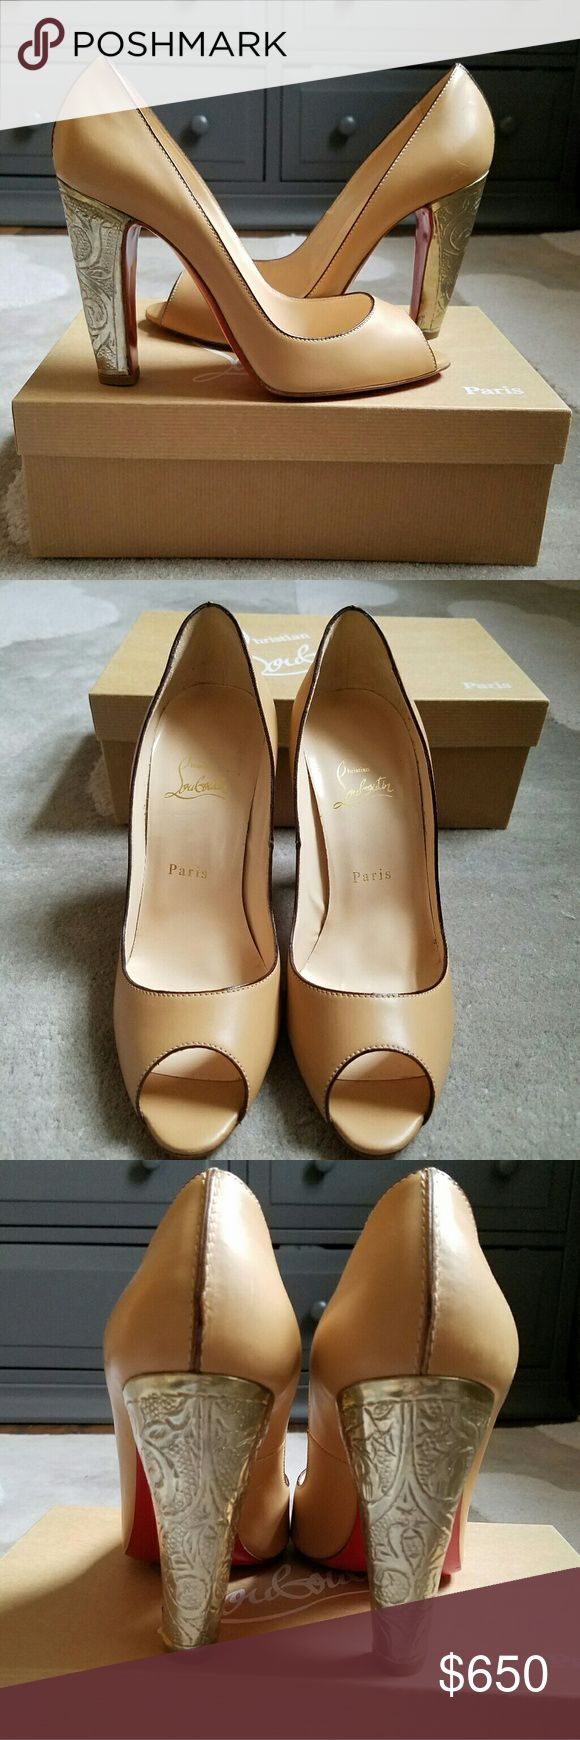 Christian Louboutin volubilis peep toe tan pumps Classy peep toe tan pumps with metallic heel.  Slight damage to metal heel on left shoe, very slight wear on soles - Never been worn, any damage was sustained in store when being tried on by customers. Comes with original box, no dustbag. Christian Louboutin Shoes Heels